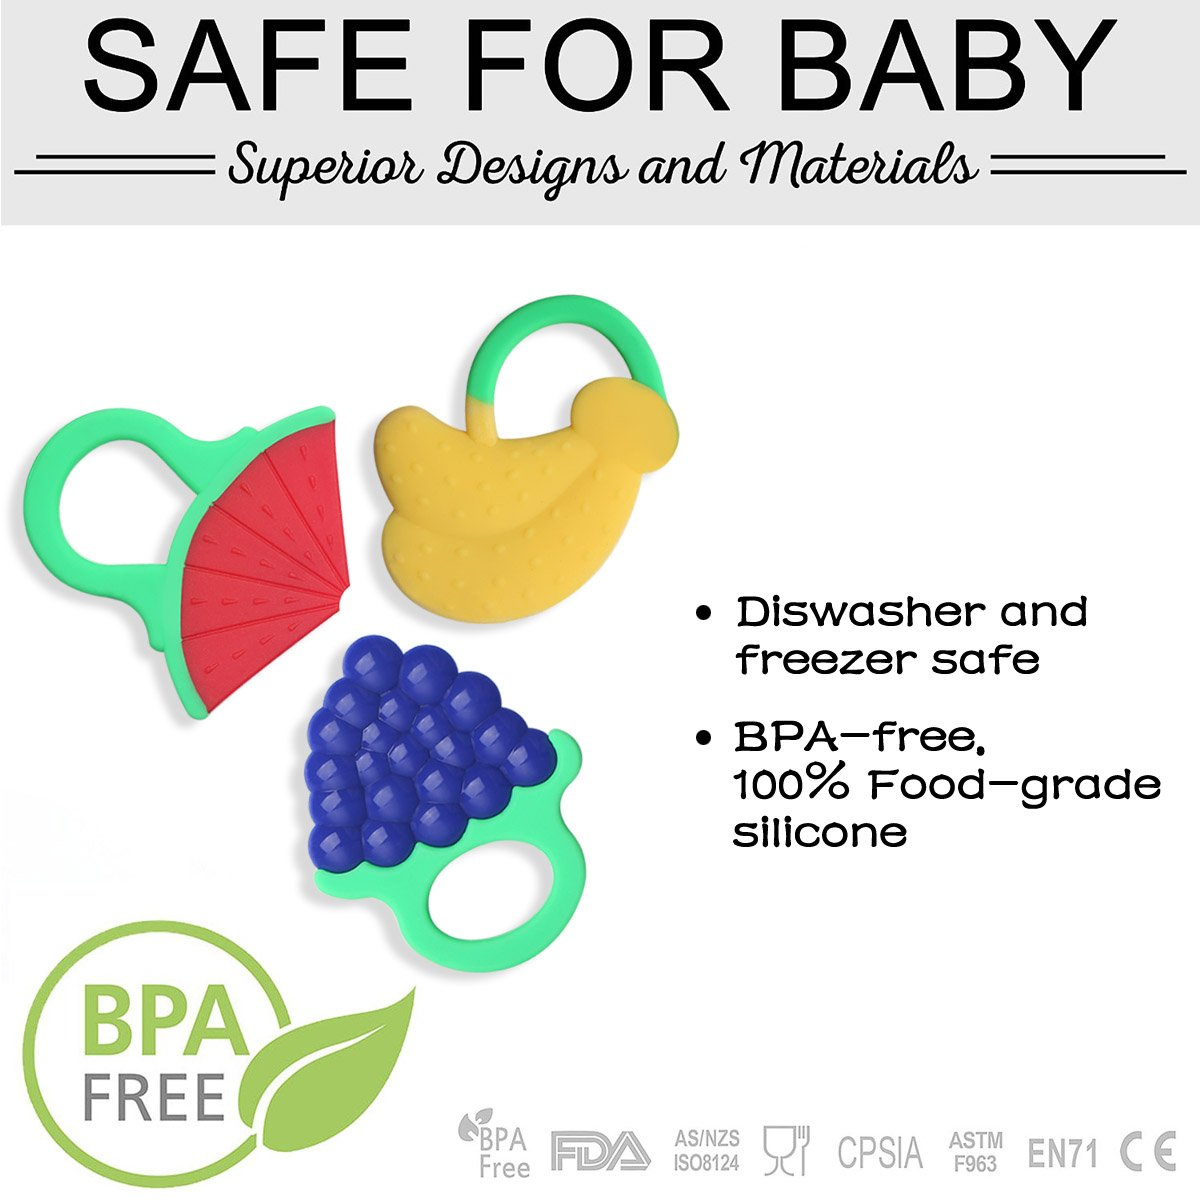 Zakitane Baby Fruit Teether Teething Toys Chewable Silicone Teethers with Rings Infant Toddler Teething Pain Relief BPA Free Set of 3 Watermelon Bananas and Grapes